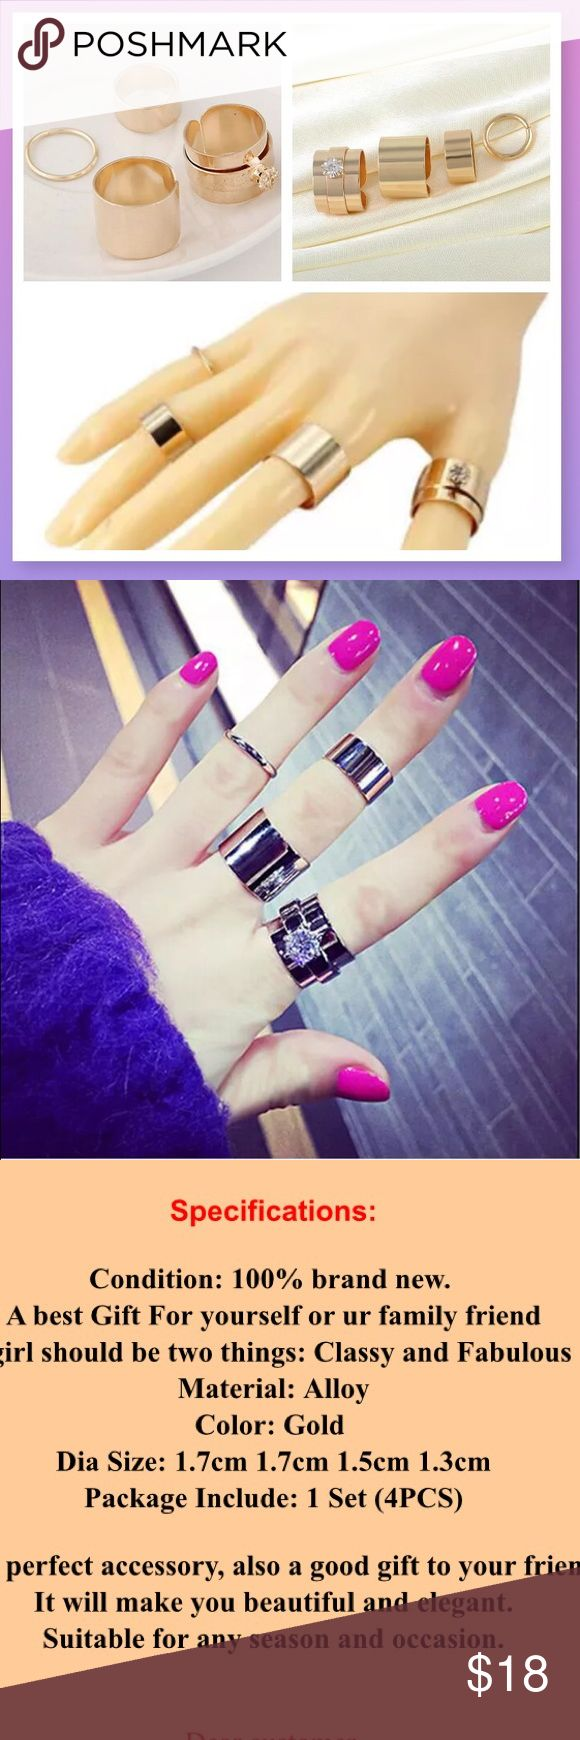 4 piece ring set in Gold, multi sized layer trends Beautiful set (info in picture above!) quality and gift/retail ready. Gold in color. Lovely! Multi-sizes for different fingers. U COUTURE Jewelry Rings